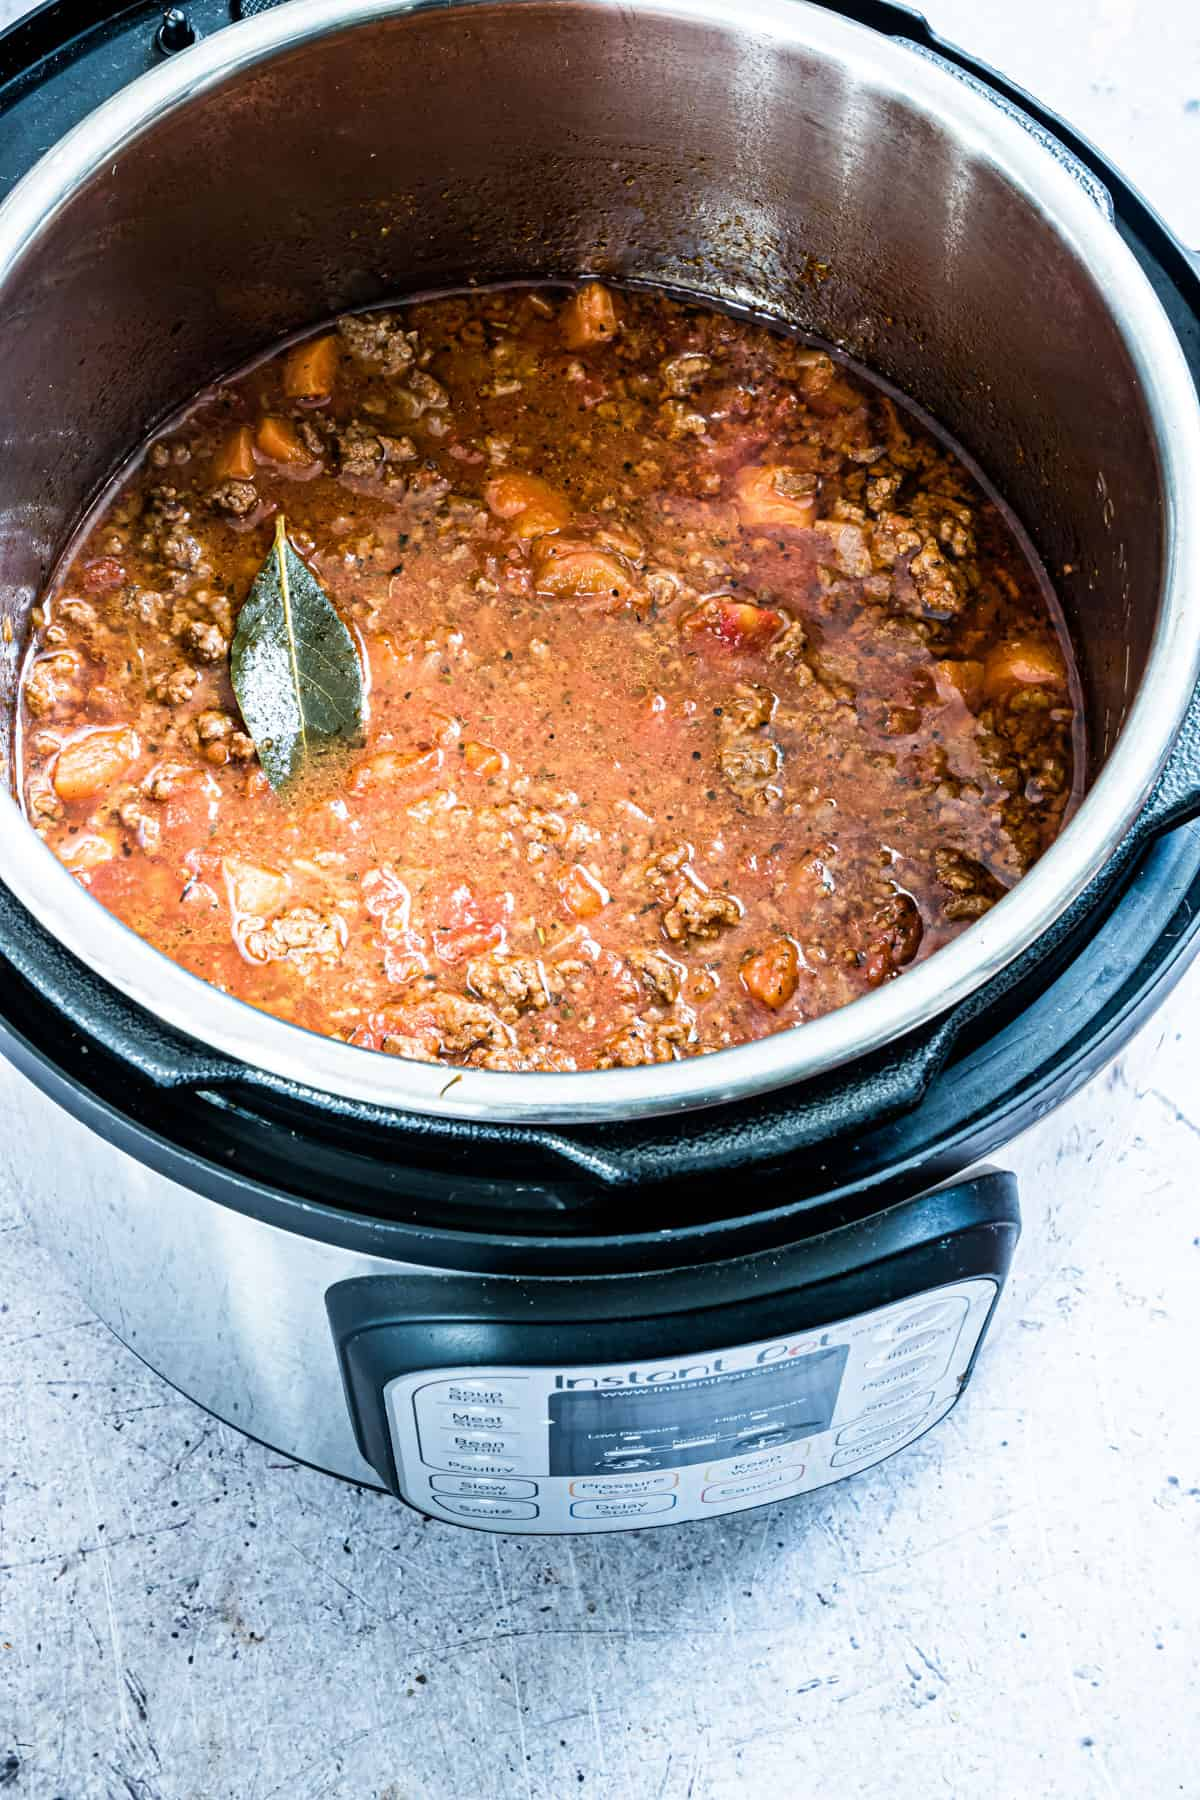 the completed bolognese sauce recipe inside the instant pot